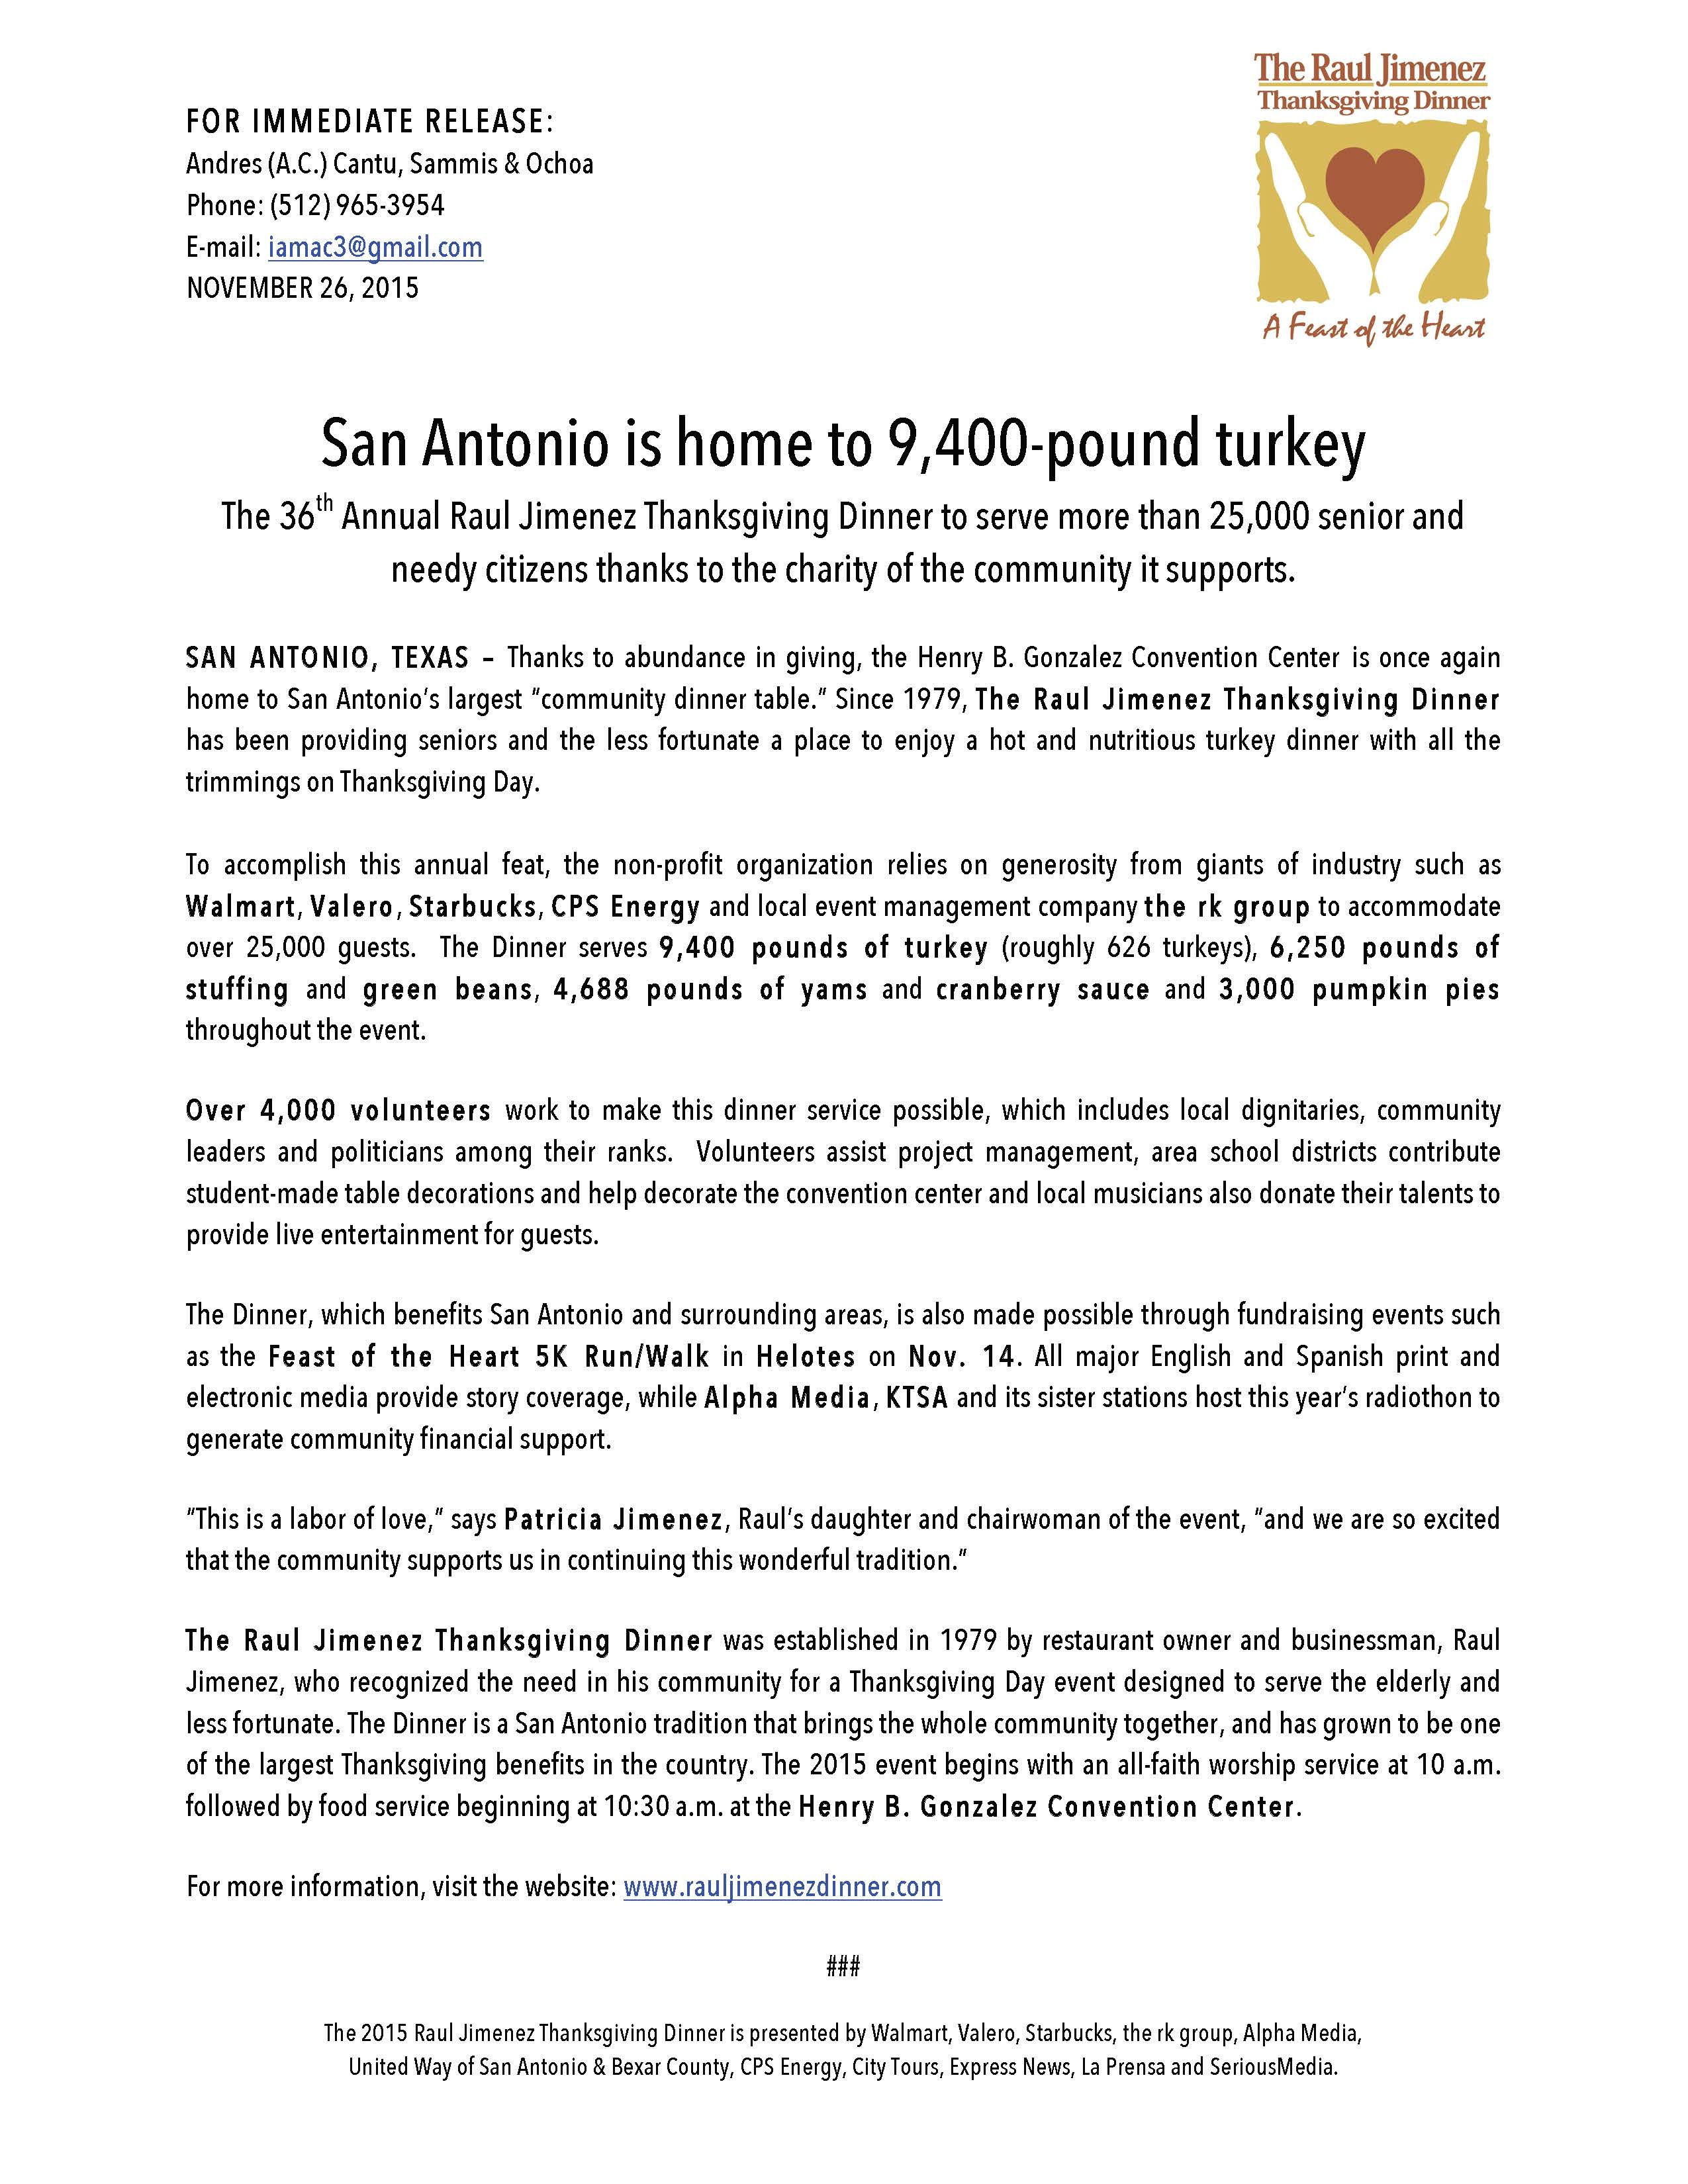 PRESS RELEASE_Raul Jimenez Thanksgiving